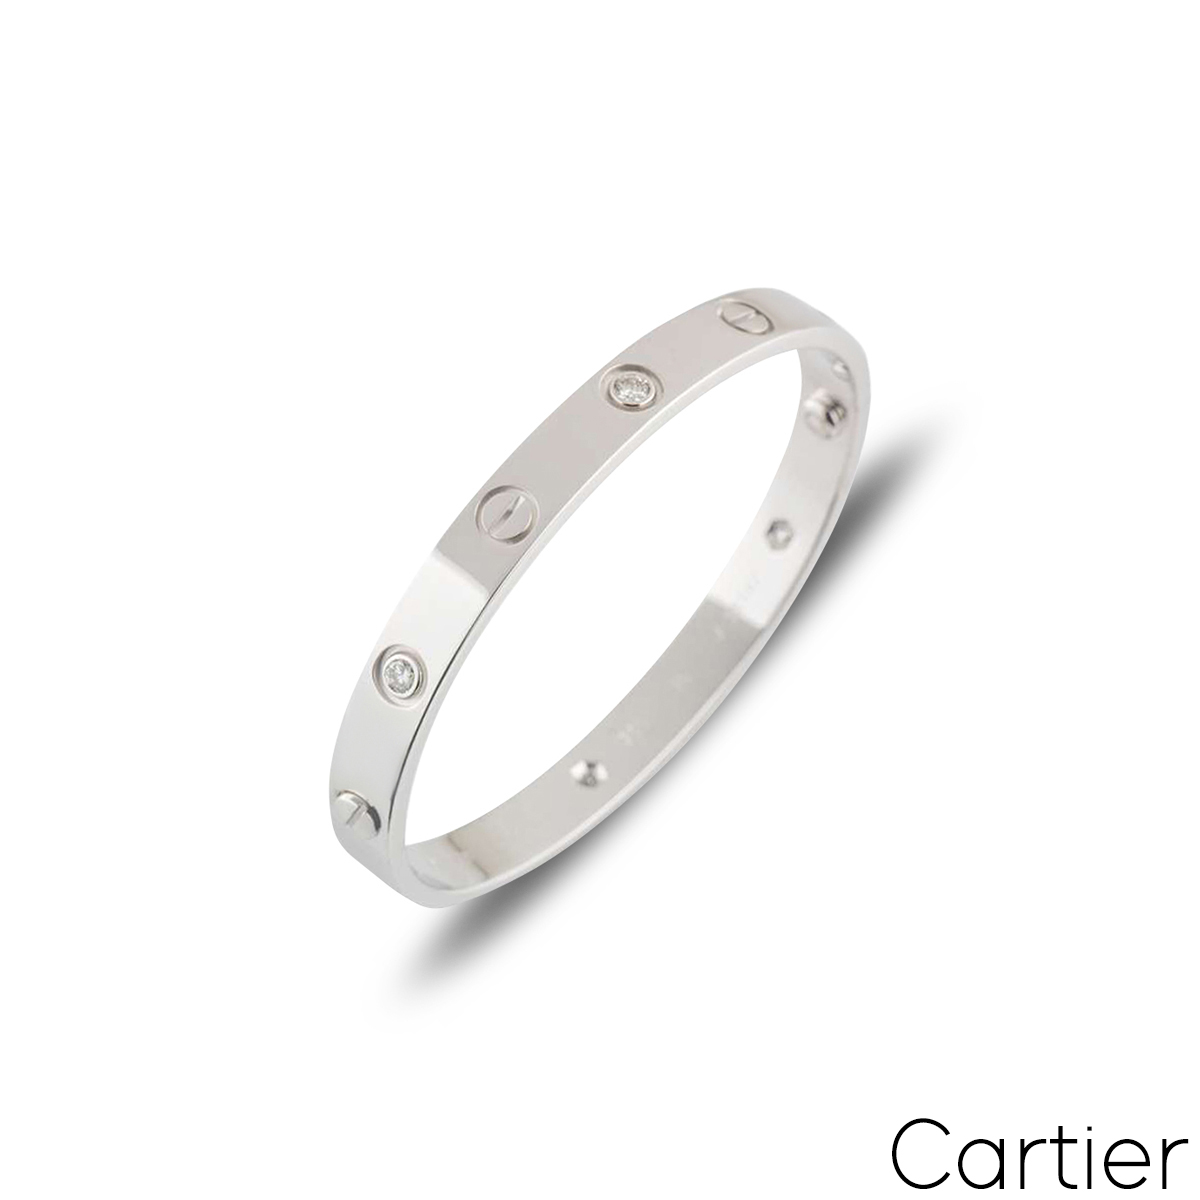 Cartier 18k White Gold Half Diamond Love Bangle Size 16 B6035816